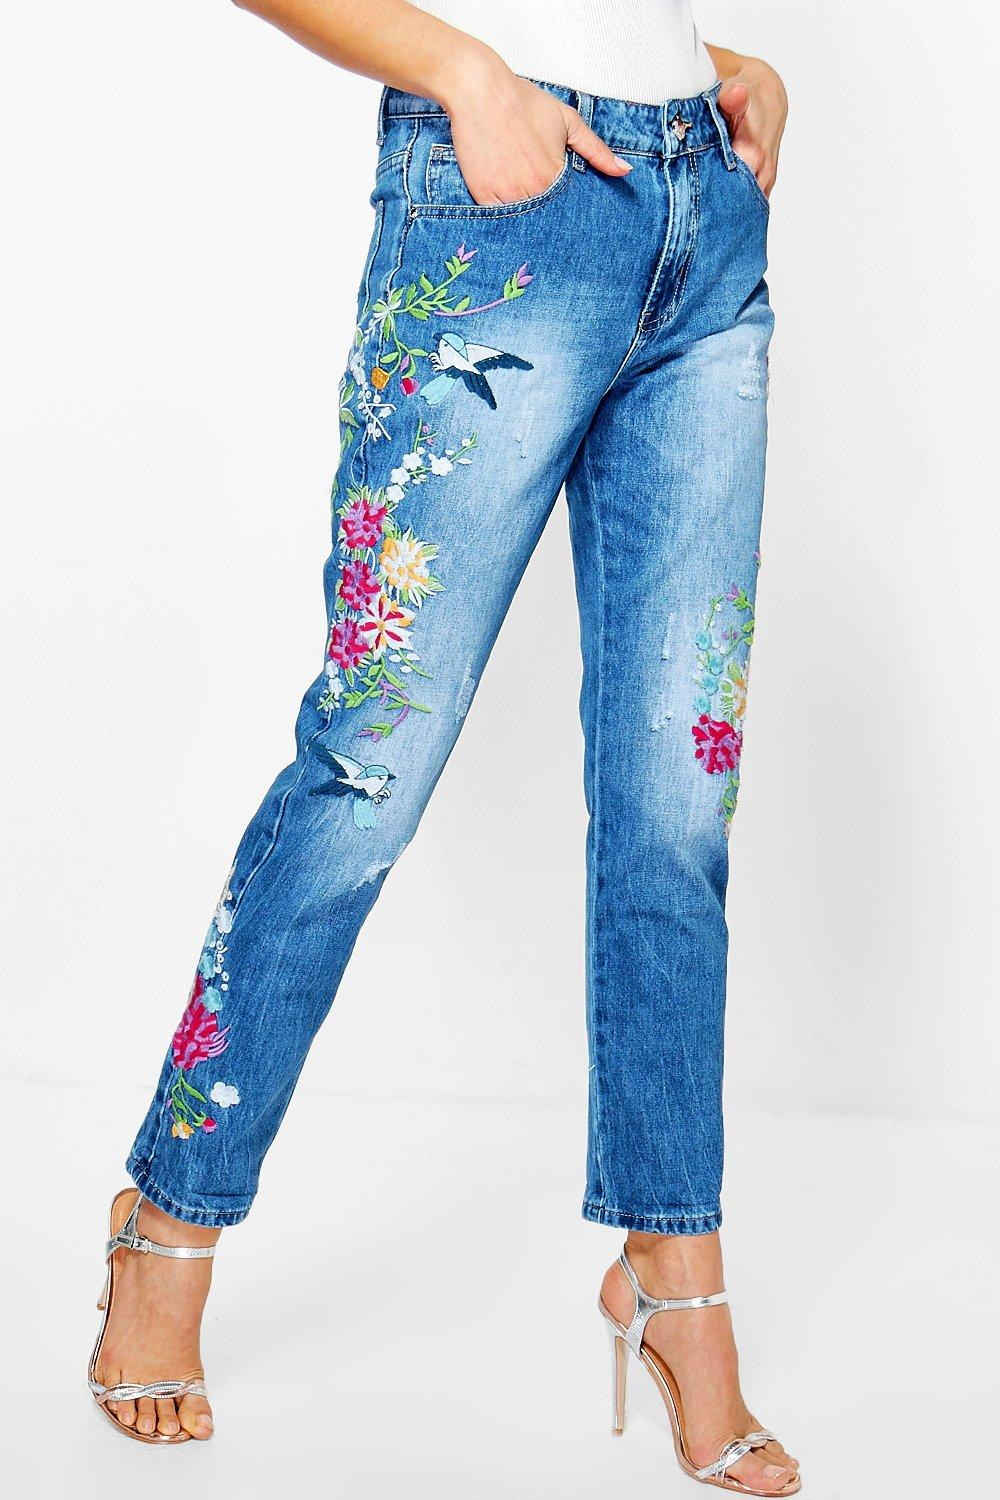 Boohoo womens molly mid rise all over embroidered